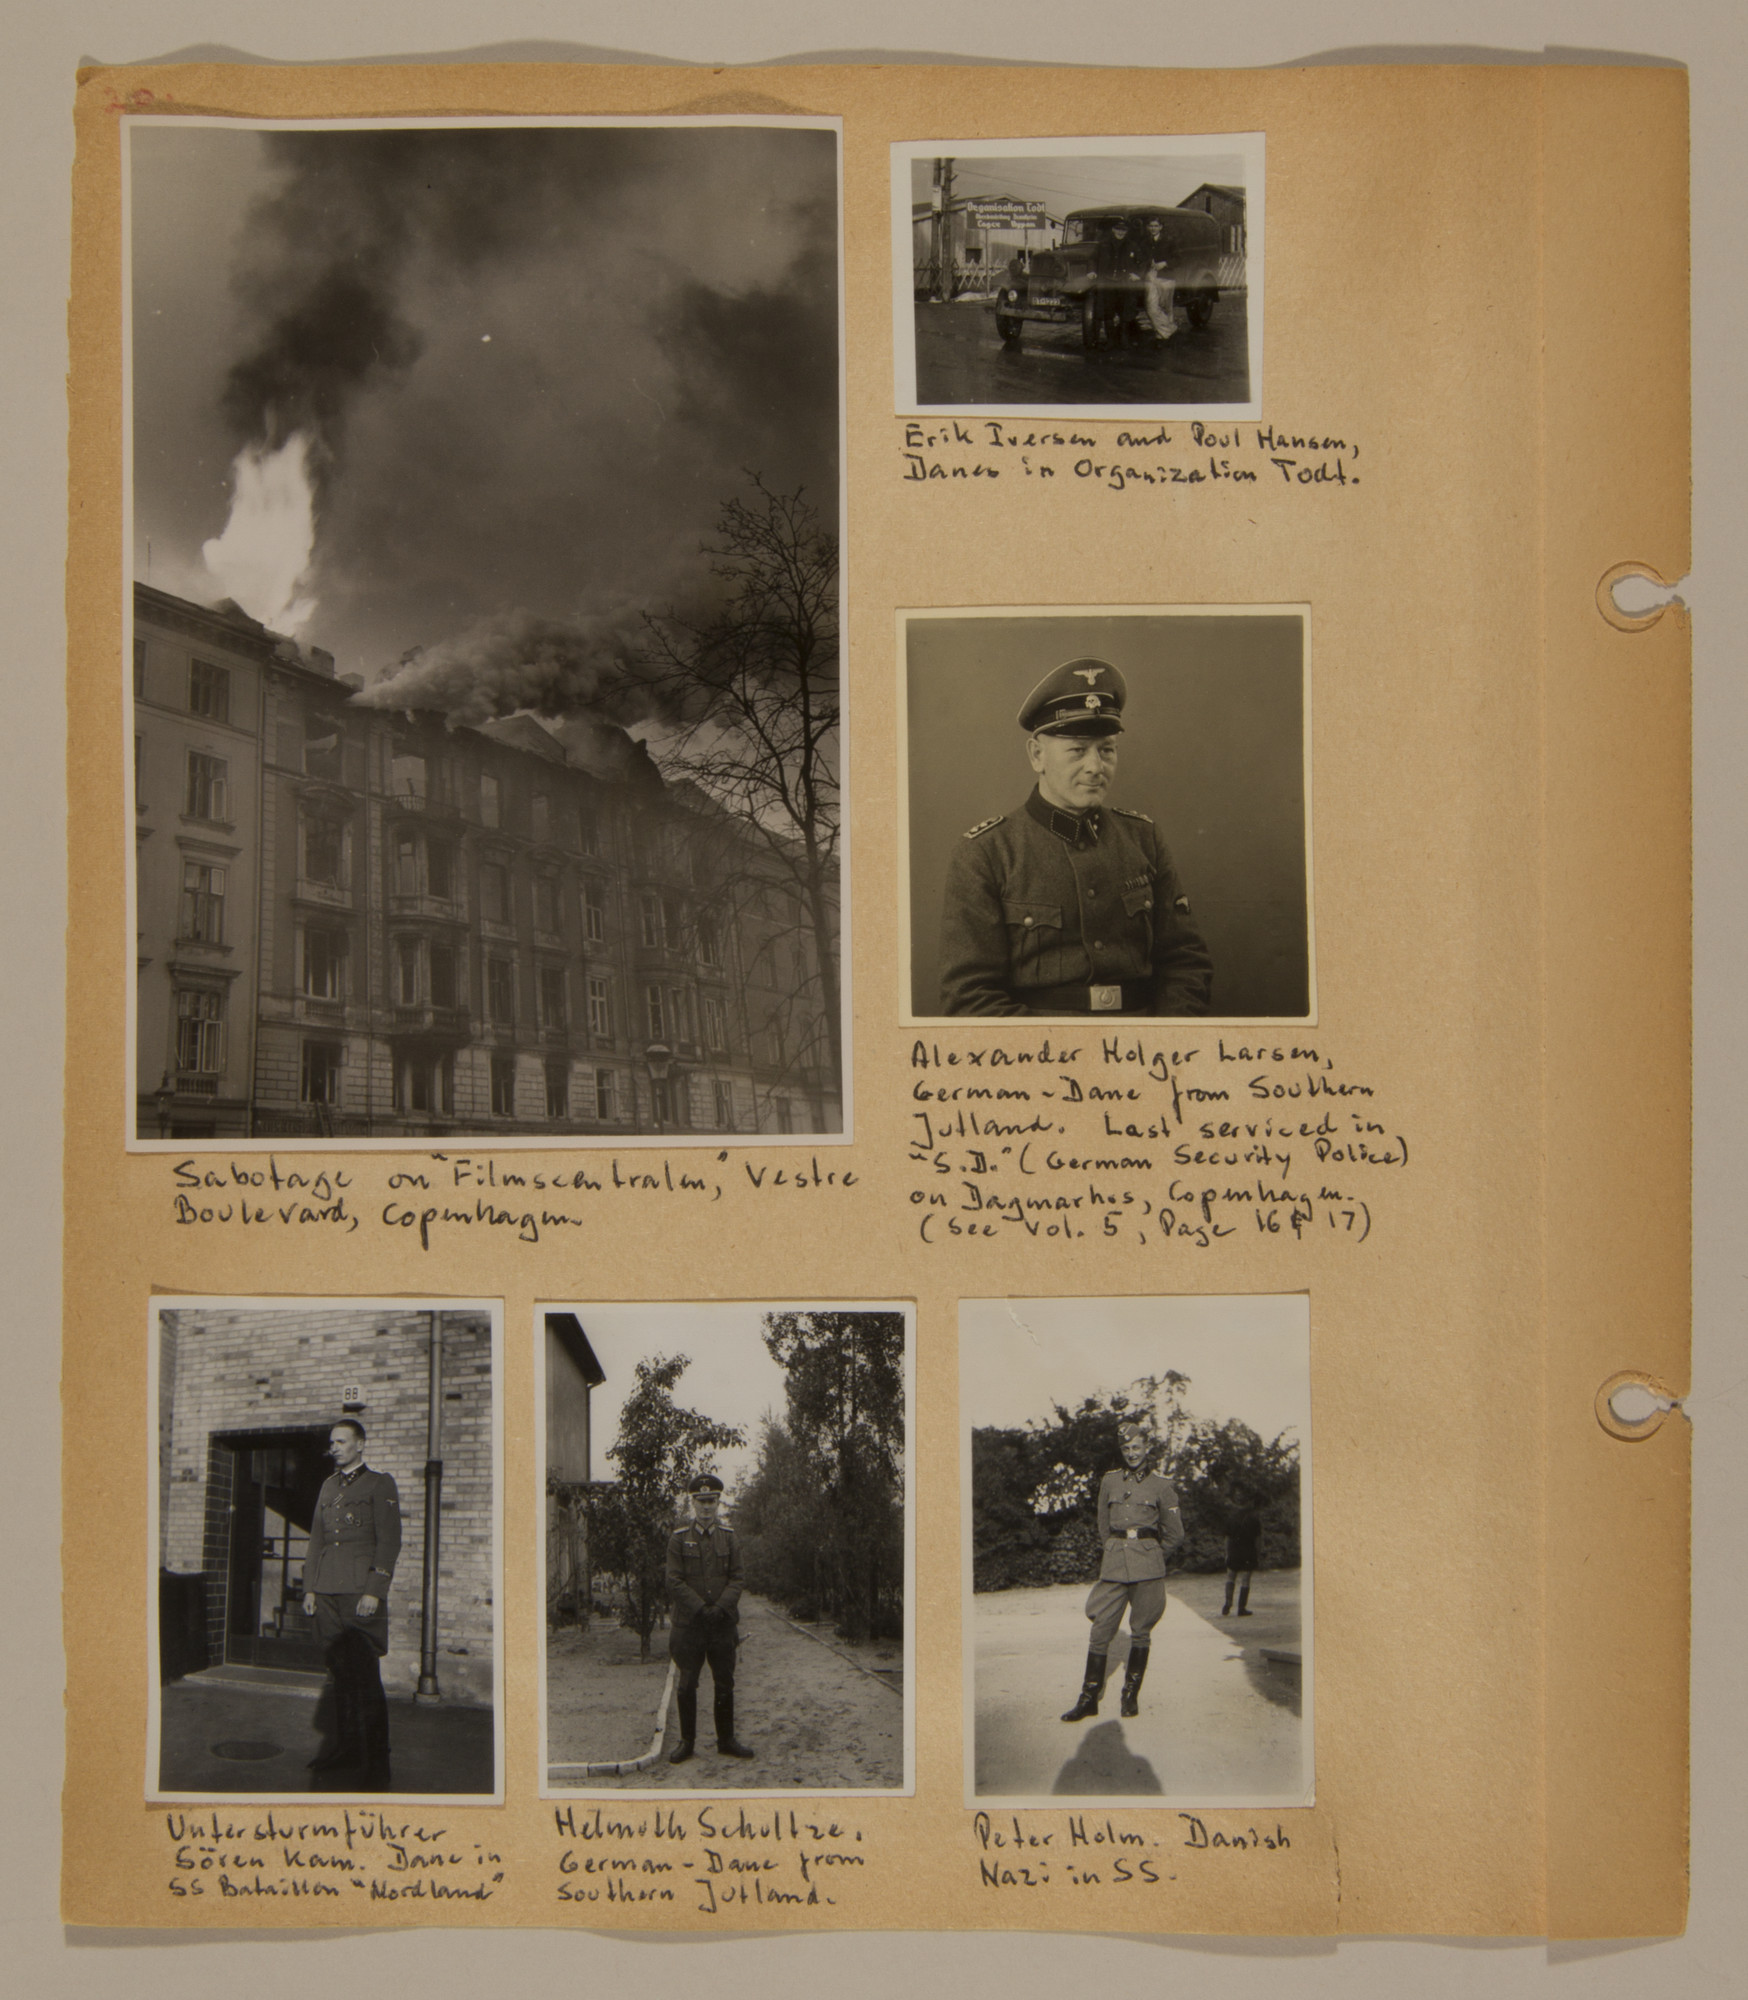 Page from volume three of a set of scrapbooks compiled by Bjorn Sibbern, a Danish policeman and resistance member, documenting the German occupation of Denmark.  This page contains photographs of German officials in Denmark and an act of sabotage, taken by Bjorn Sibbern while using a forged press card with a false identity.